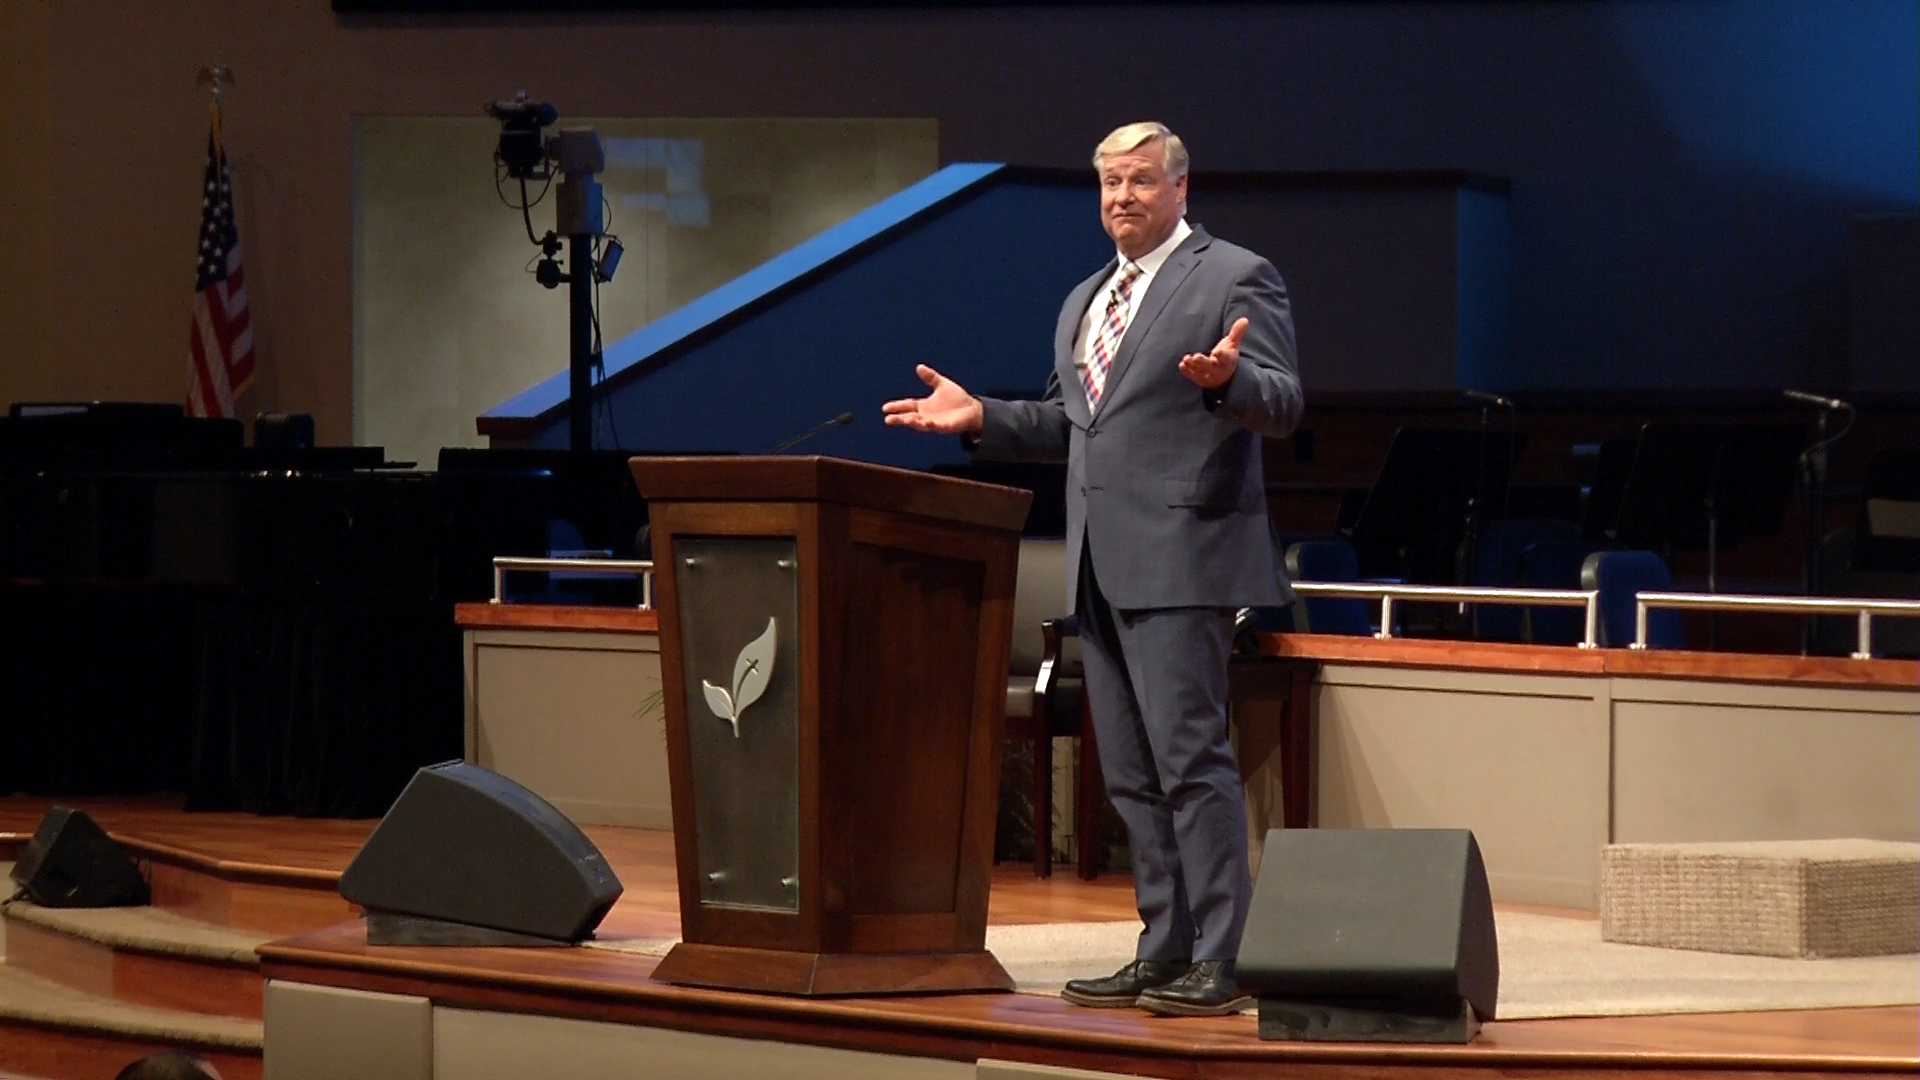 Dr. Jim Schettler: Good Vision Leads to Great Victory